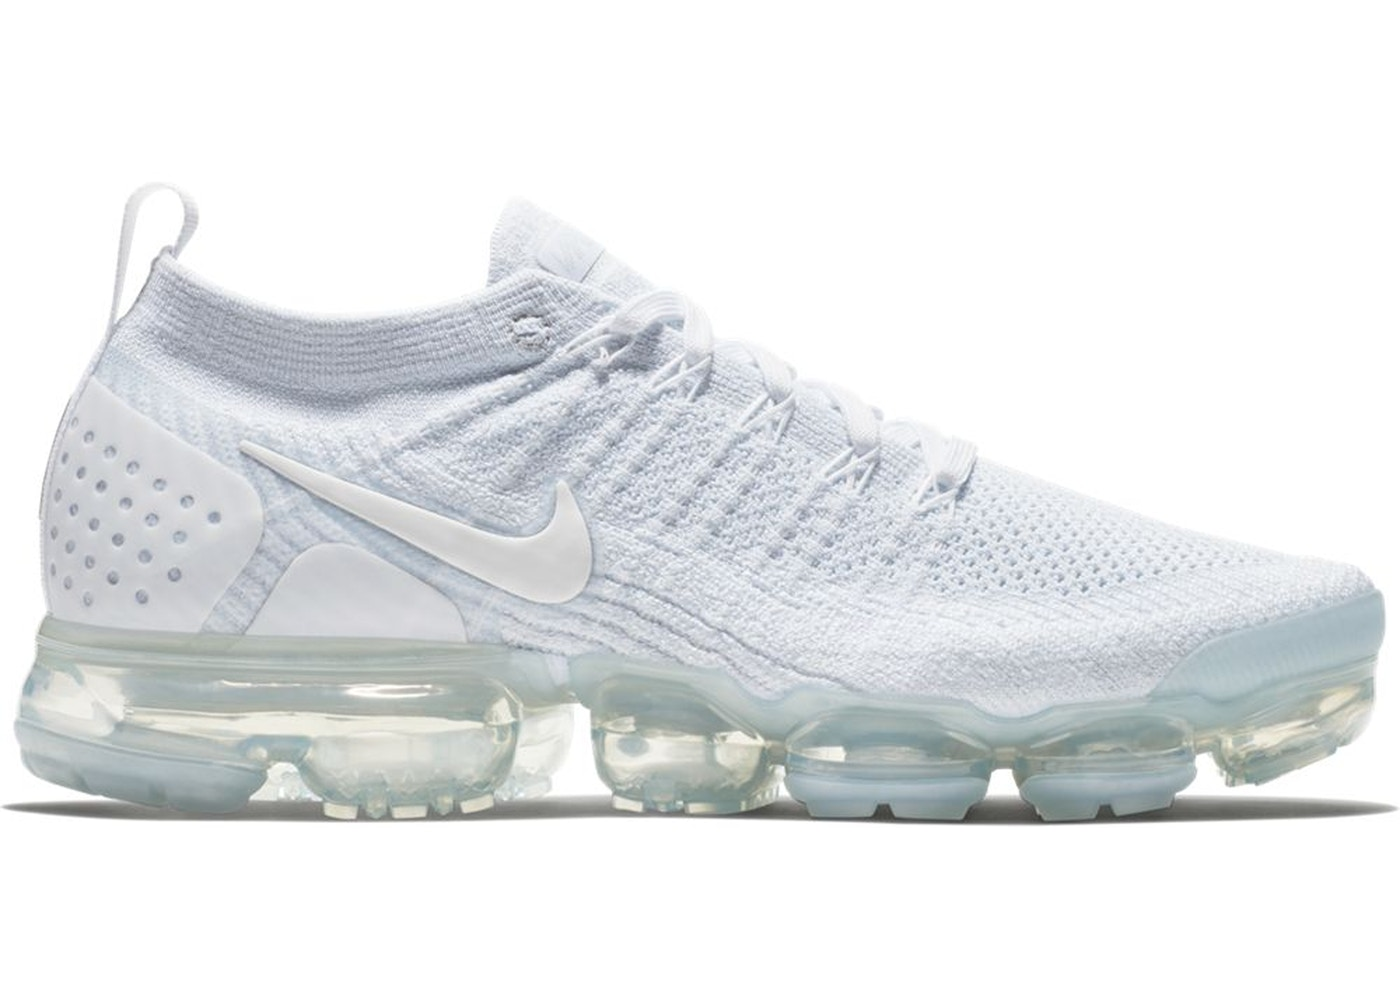 9bdb129cfa1ff Air VaporMax Flyknit 2 White Pure Platinum - 942842-100